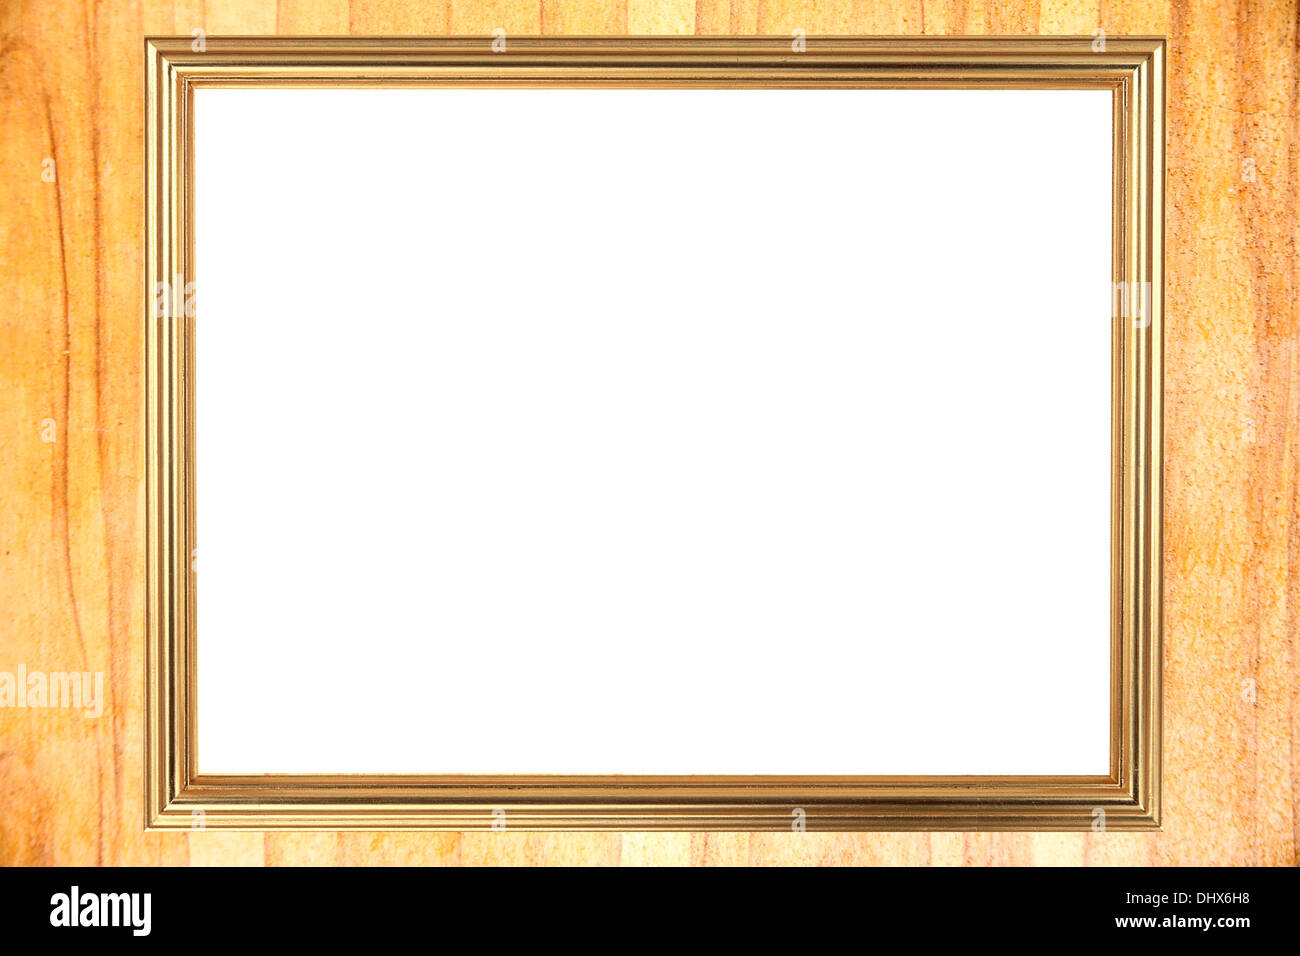 The Gold frame on Through burnish the wood planks to polished beauty. - Stock Image